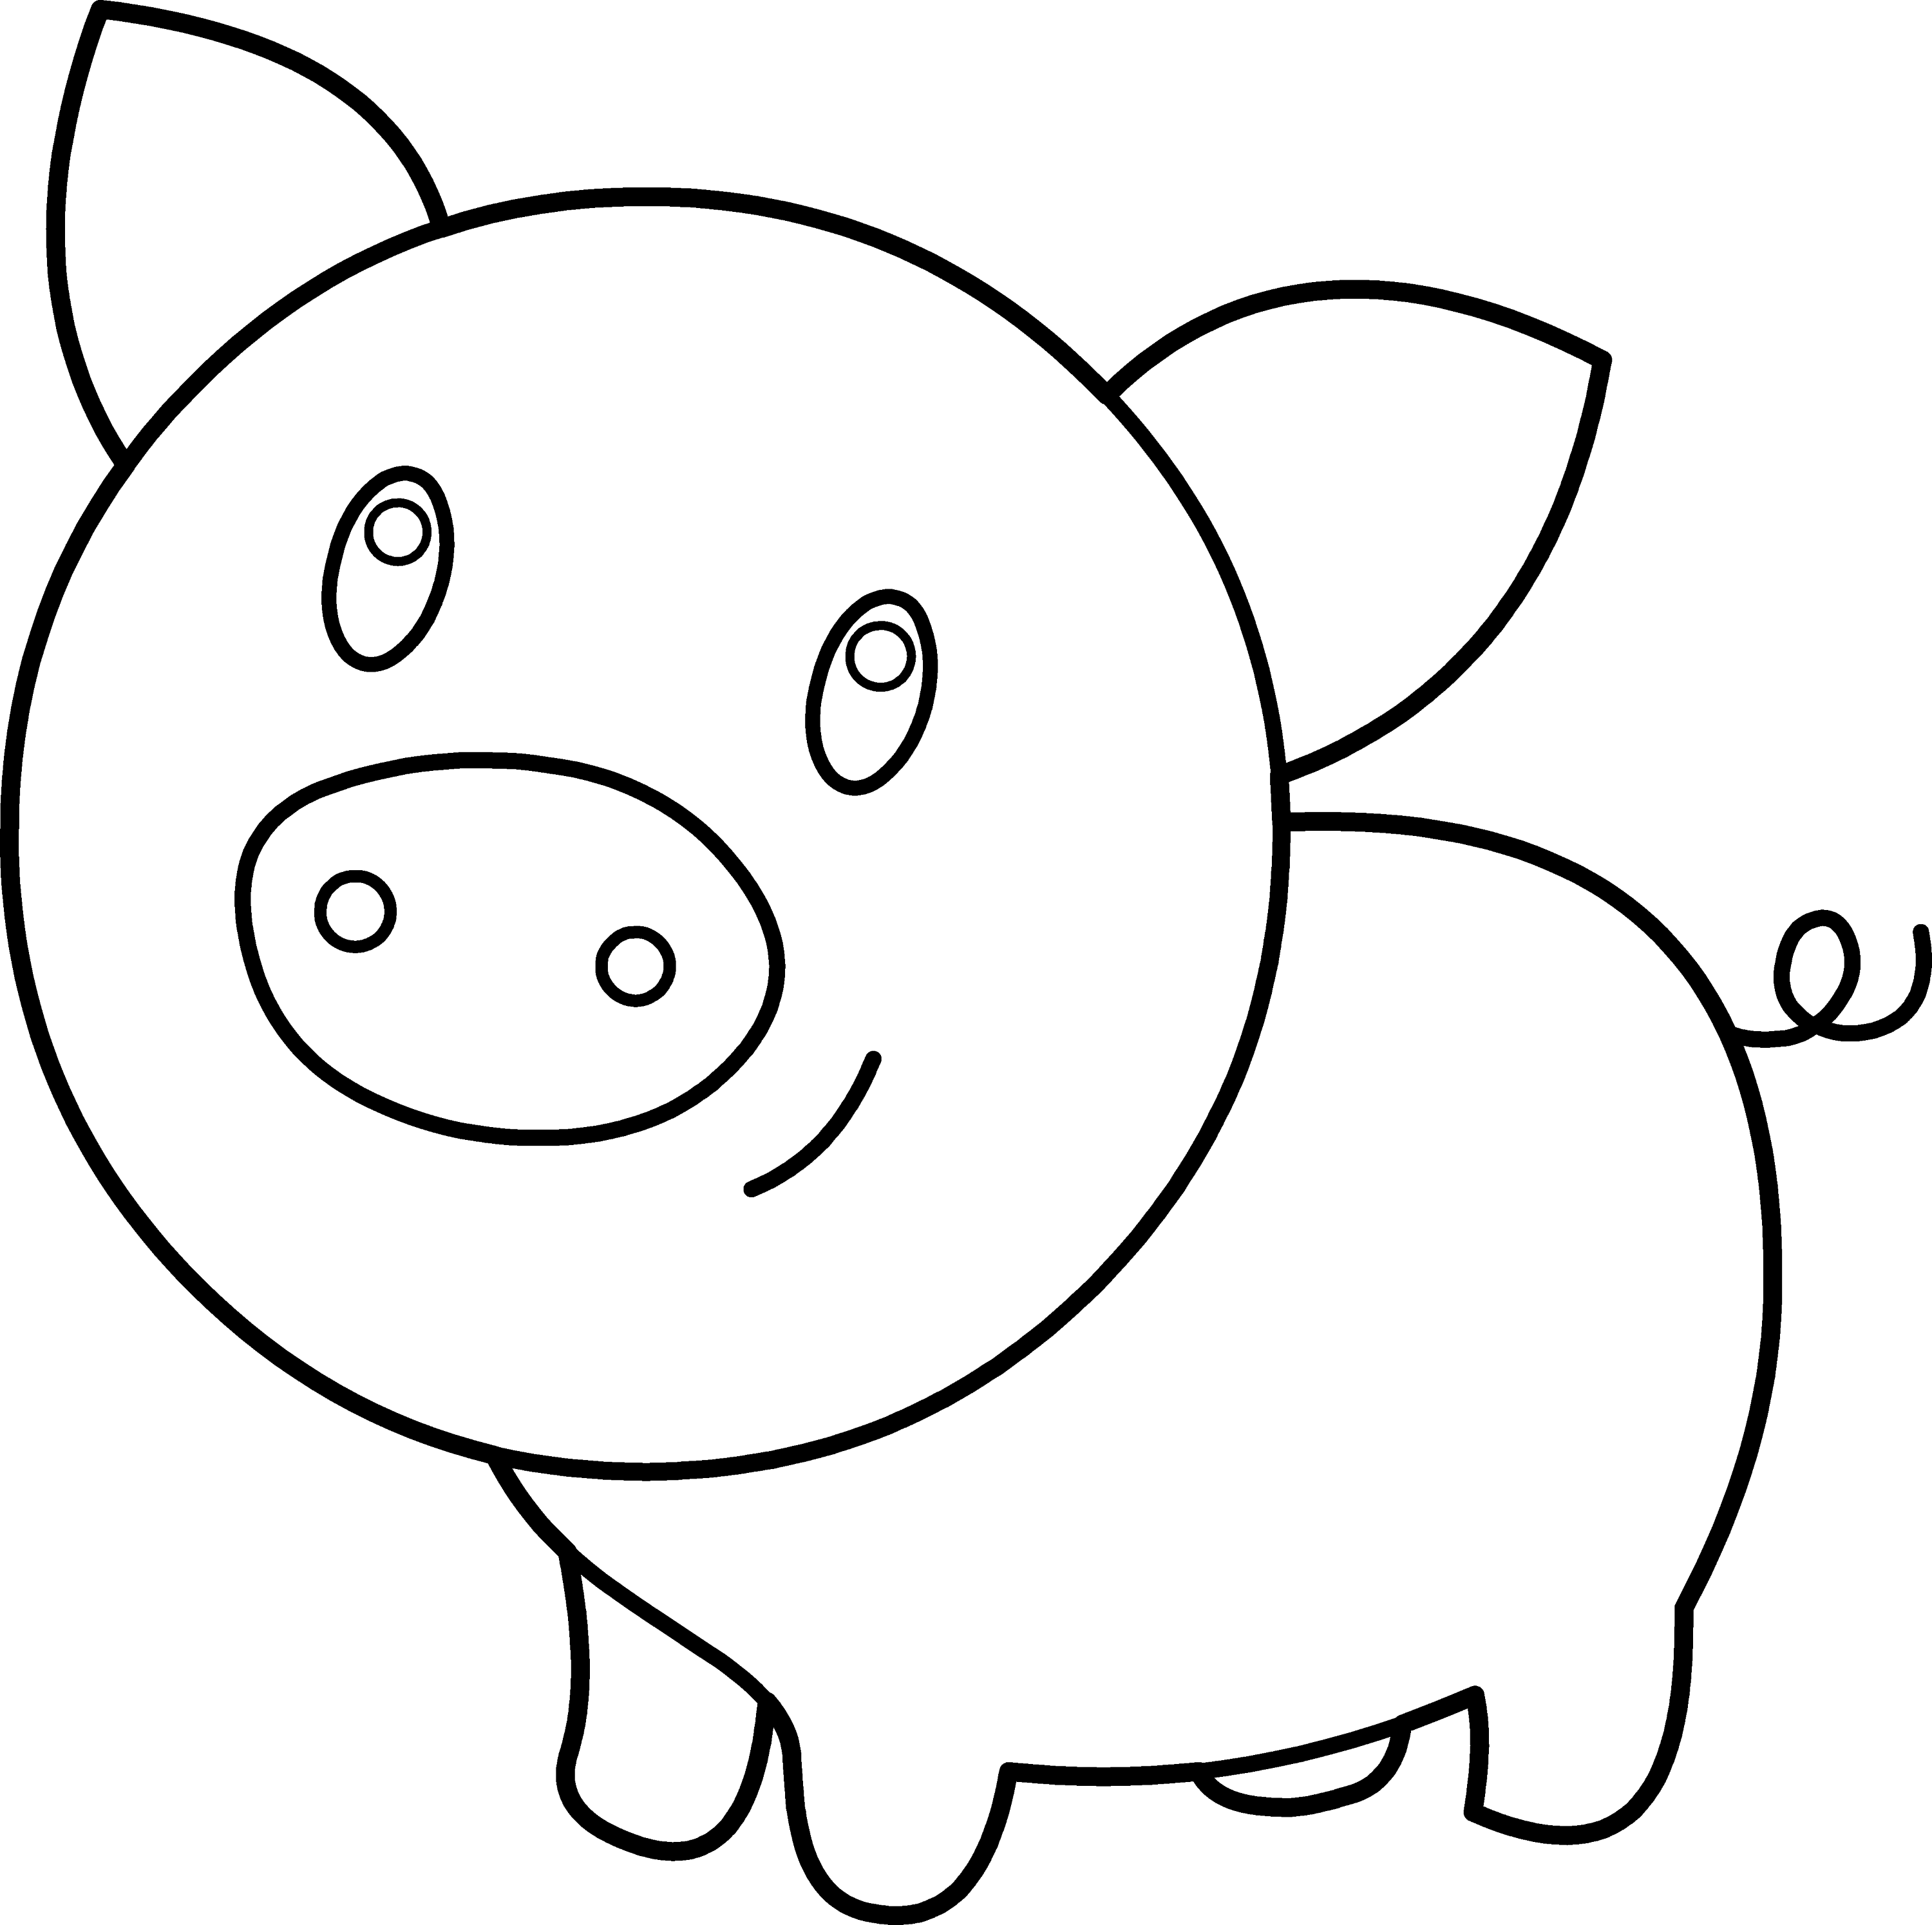 baby animal outlines cute pig coloring page free clip art outlines baby animal